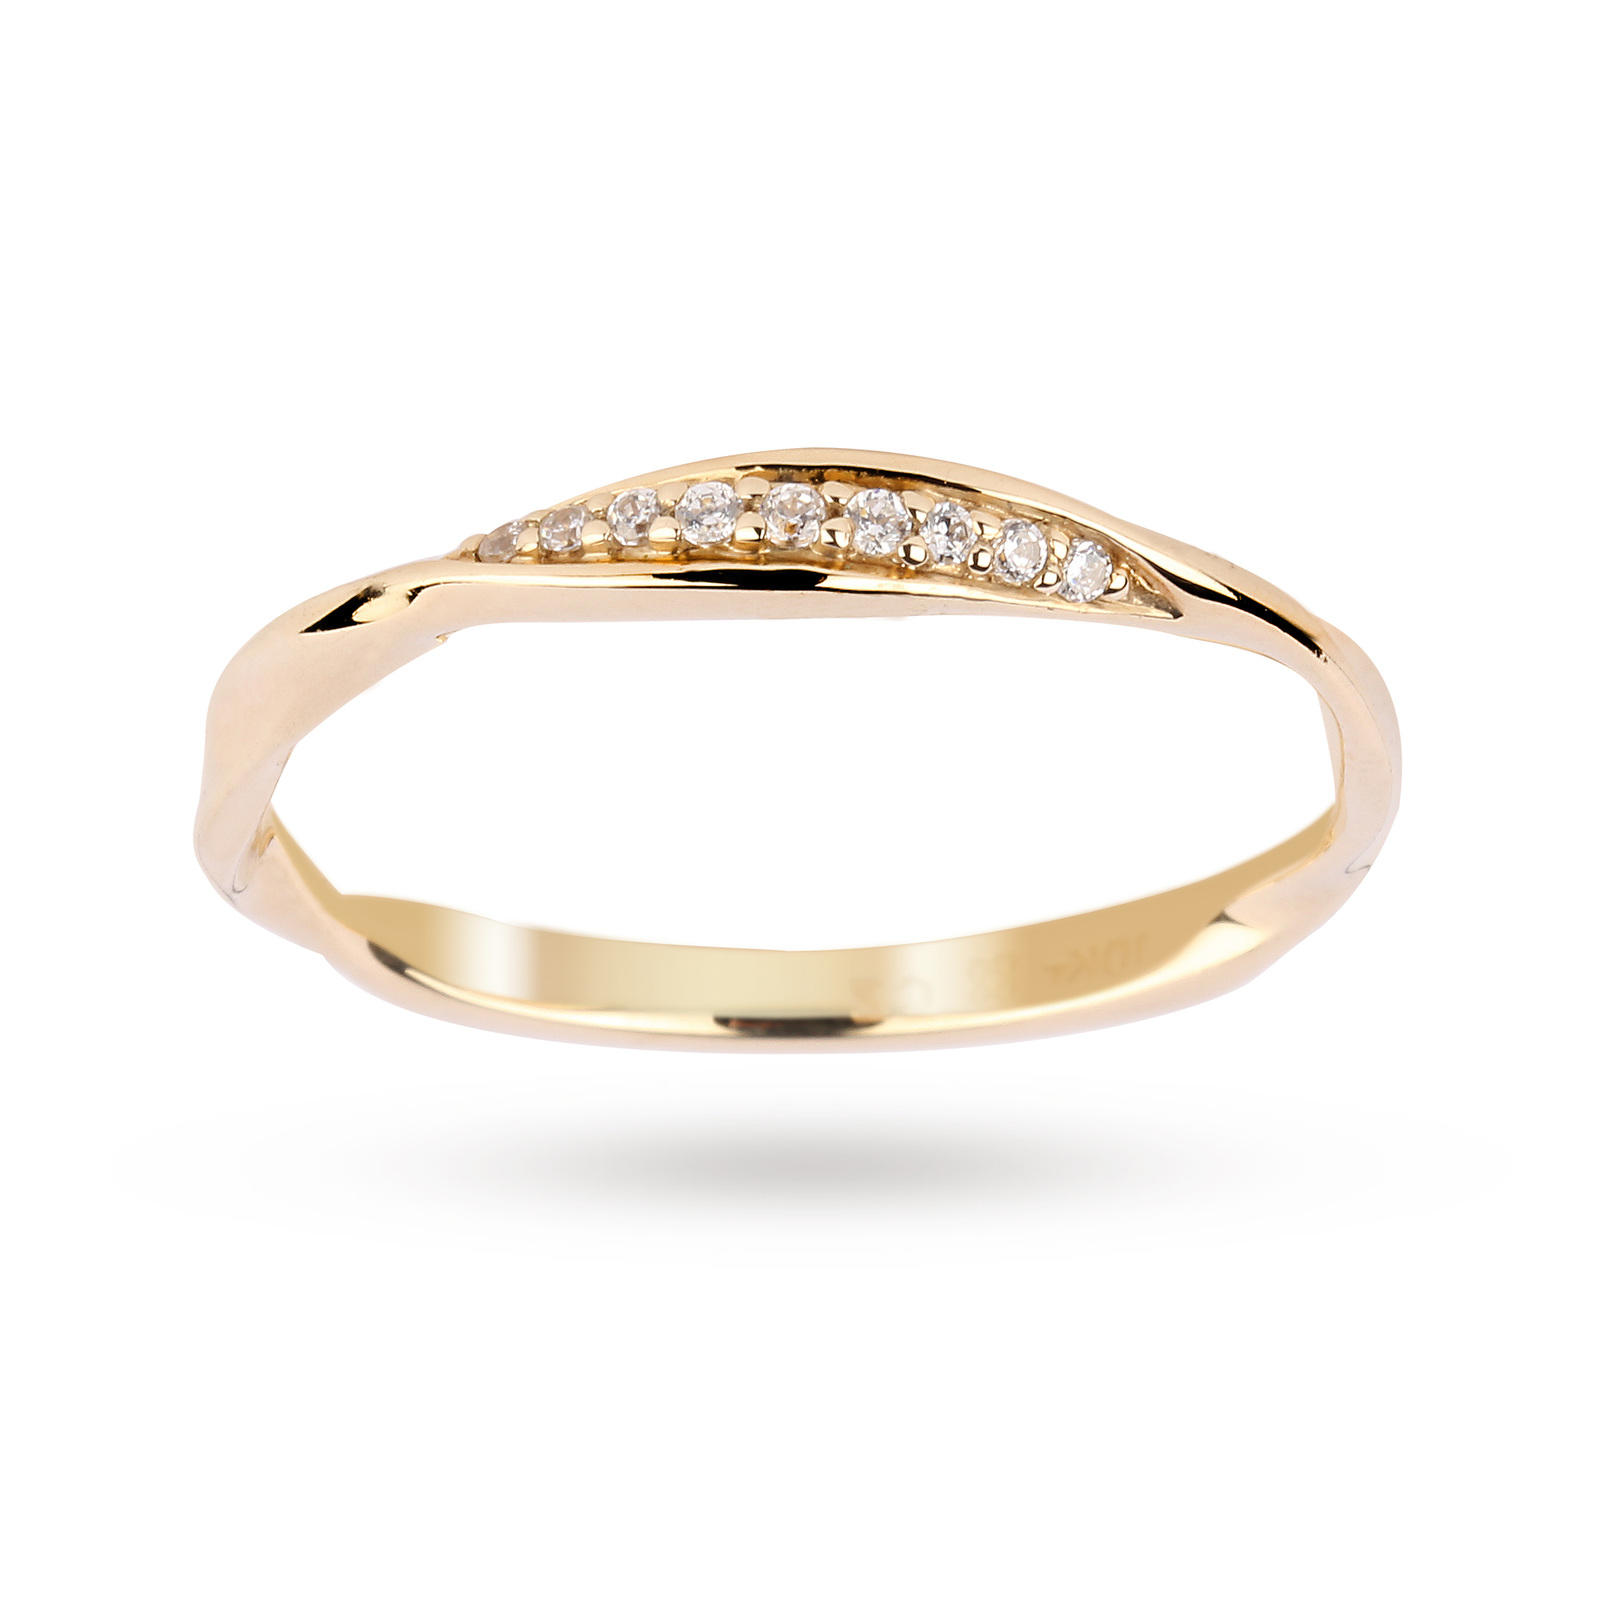 Brilliant Cut Diamond Ring in 9 Carat Yellow Gold - Ring Size N